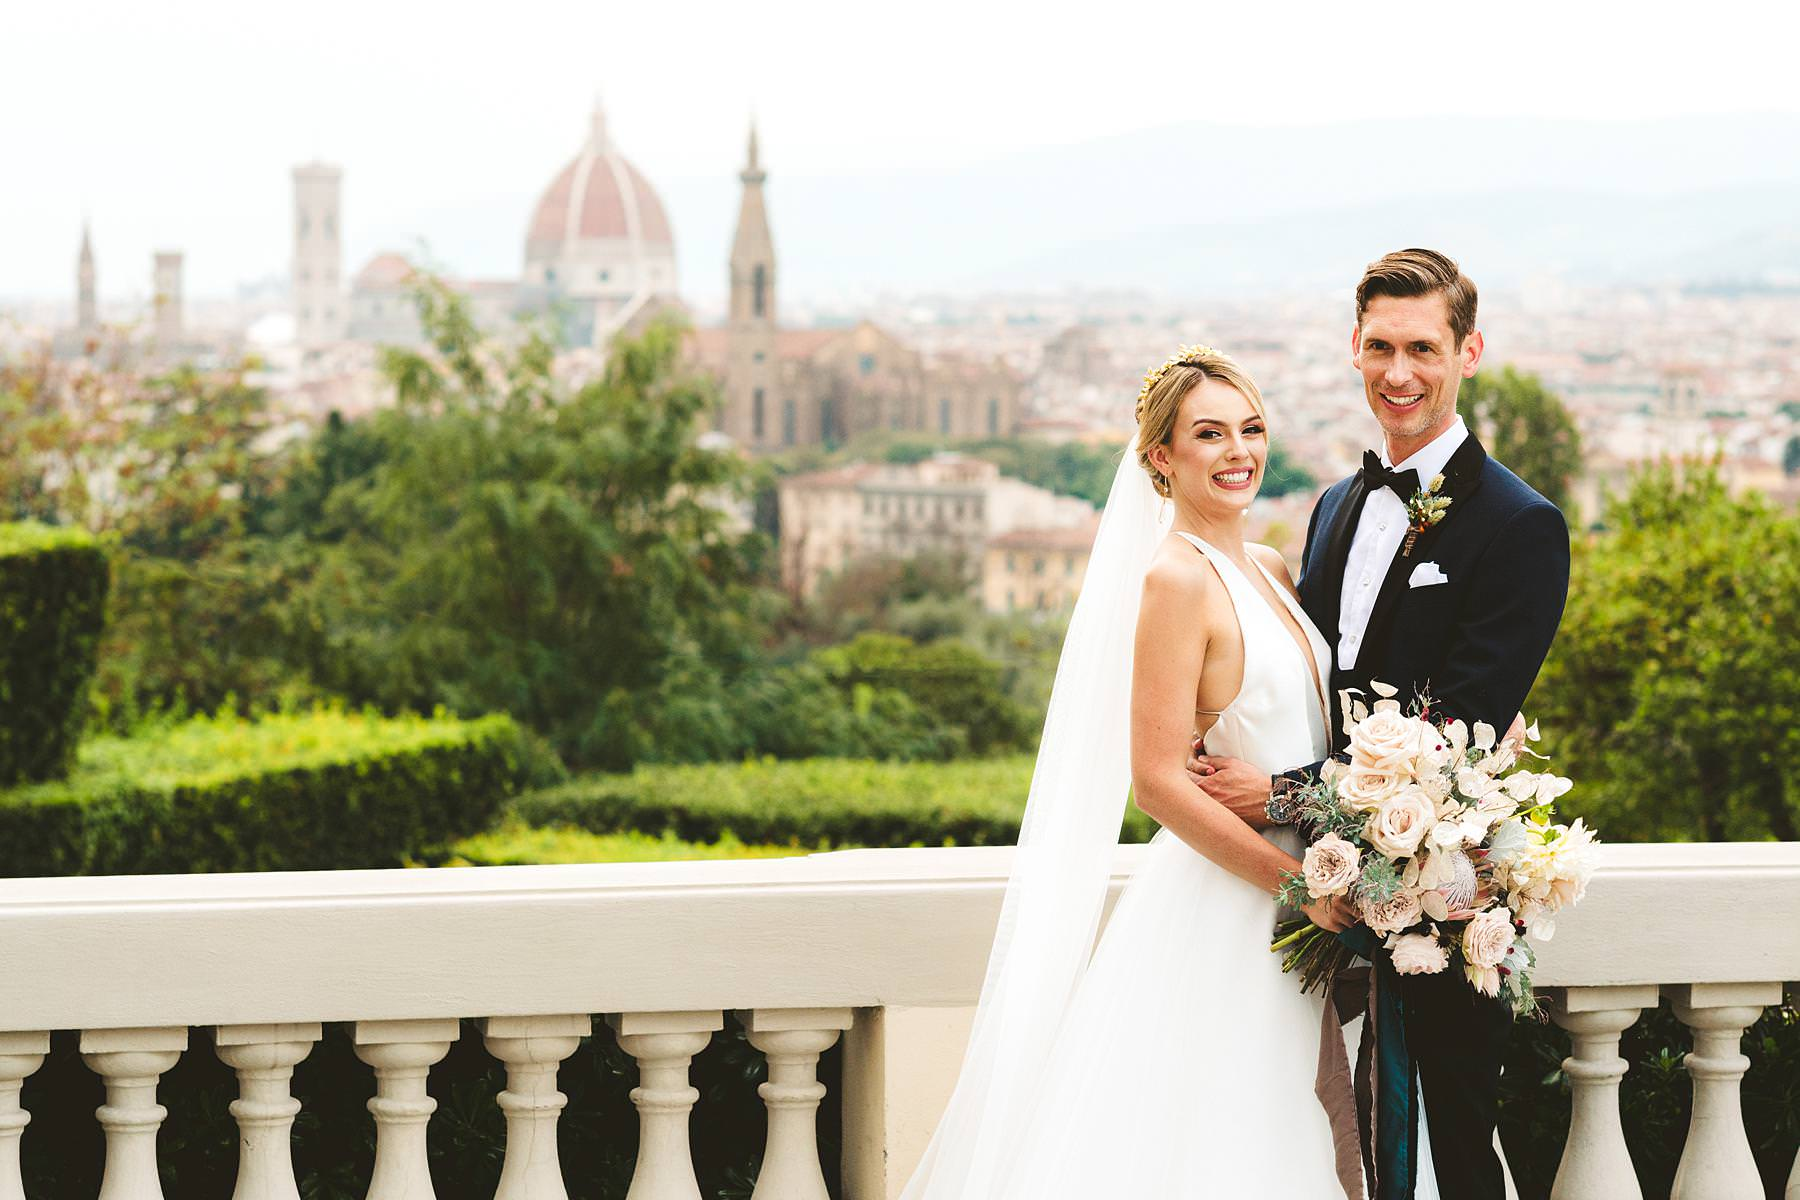 Christina and Cheyne's intimate, luxury wedding at the romantic Renaissance Villa La Vedetta, Florence. Fall in love with the view